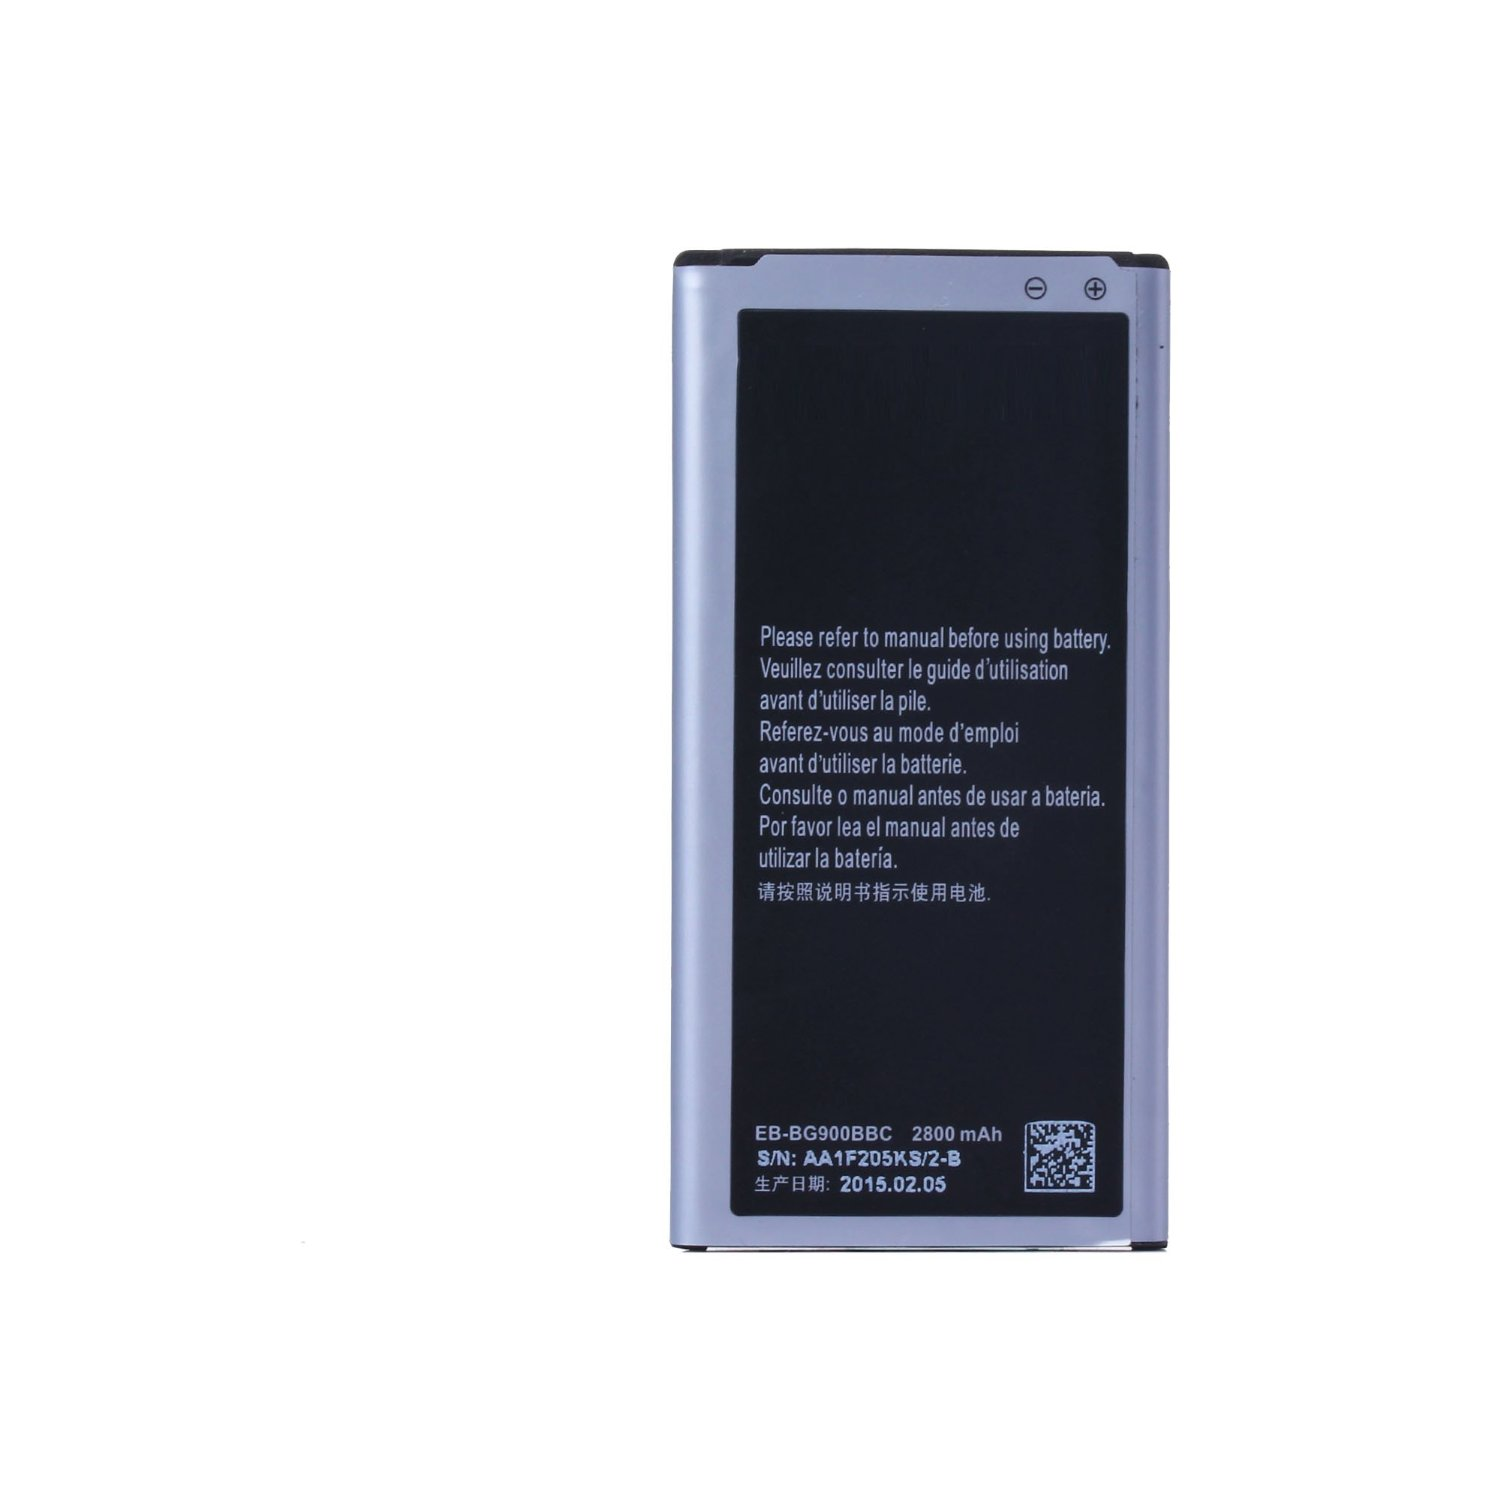 PowerFull Tech Genuine Battery EB-BG900BBC EB-BG900BBE EB-BG900BBU For Samsung Galaxy S5 SM-G900F / Samsung Galaxy S5 SM-G900T / Samsung Galaxy S5 SM-G900P / Samsung Galaxy S5 SM-G900A / Samsung Galaxy S5 SM-G900AZ / Samsung Galaxy S5 SM-G900T1 / Samsung Galaxy S5 SM-G900R6 / Samsung Galaxy S5